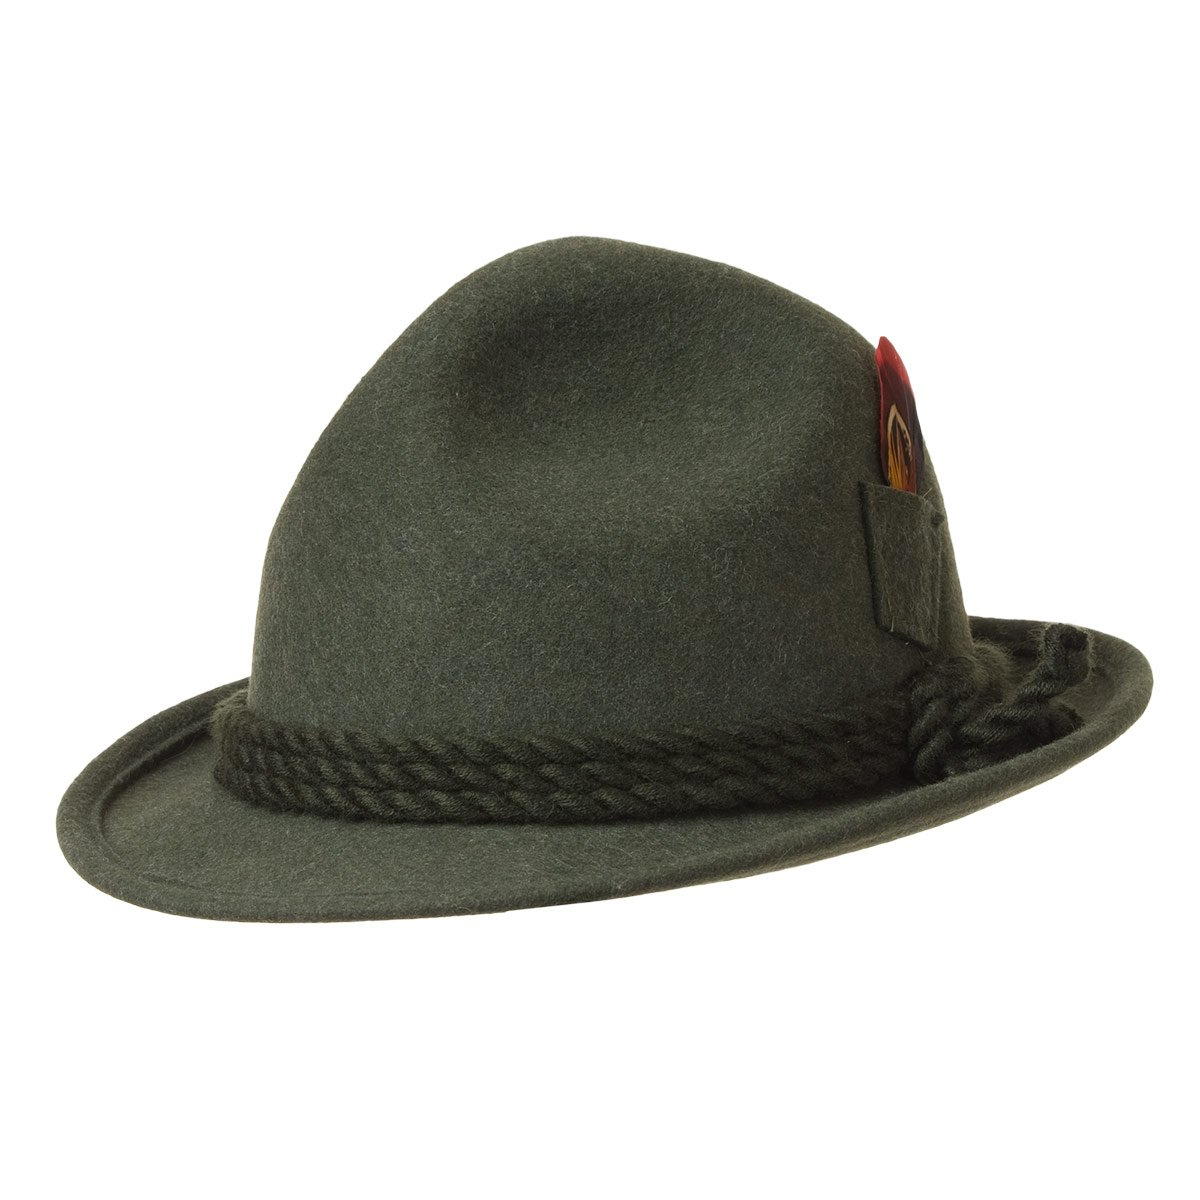 9721d1dbc Tyrolean hat with side pocket for feathers signed Hutter